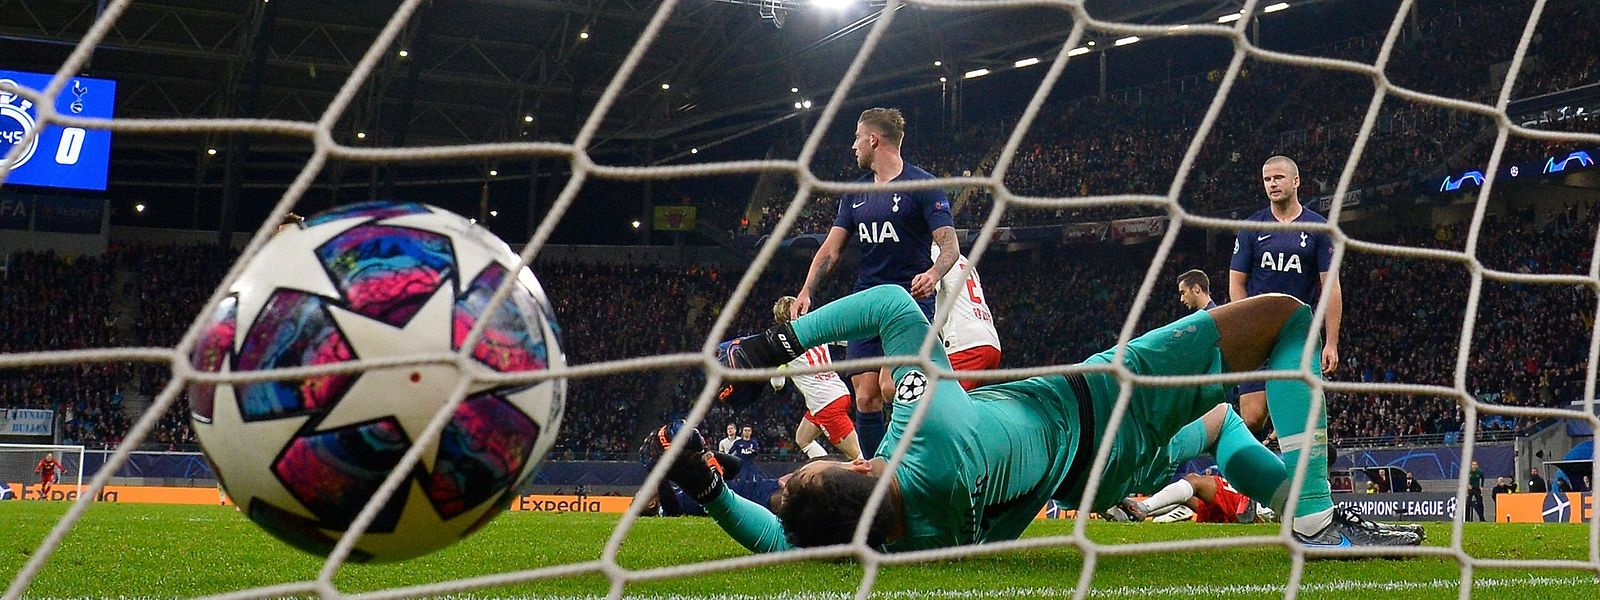 Hugo Lloris s'incline, Leipzig a amplement mérité sa qualification pour les quarts de finale de la C1.